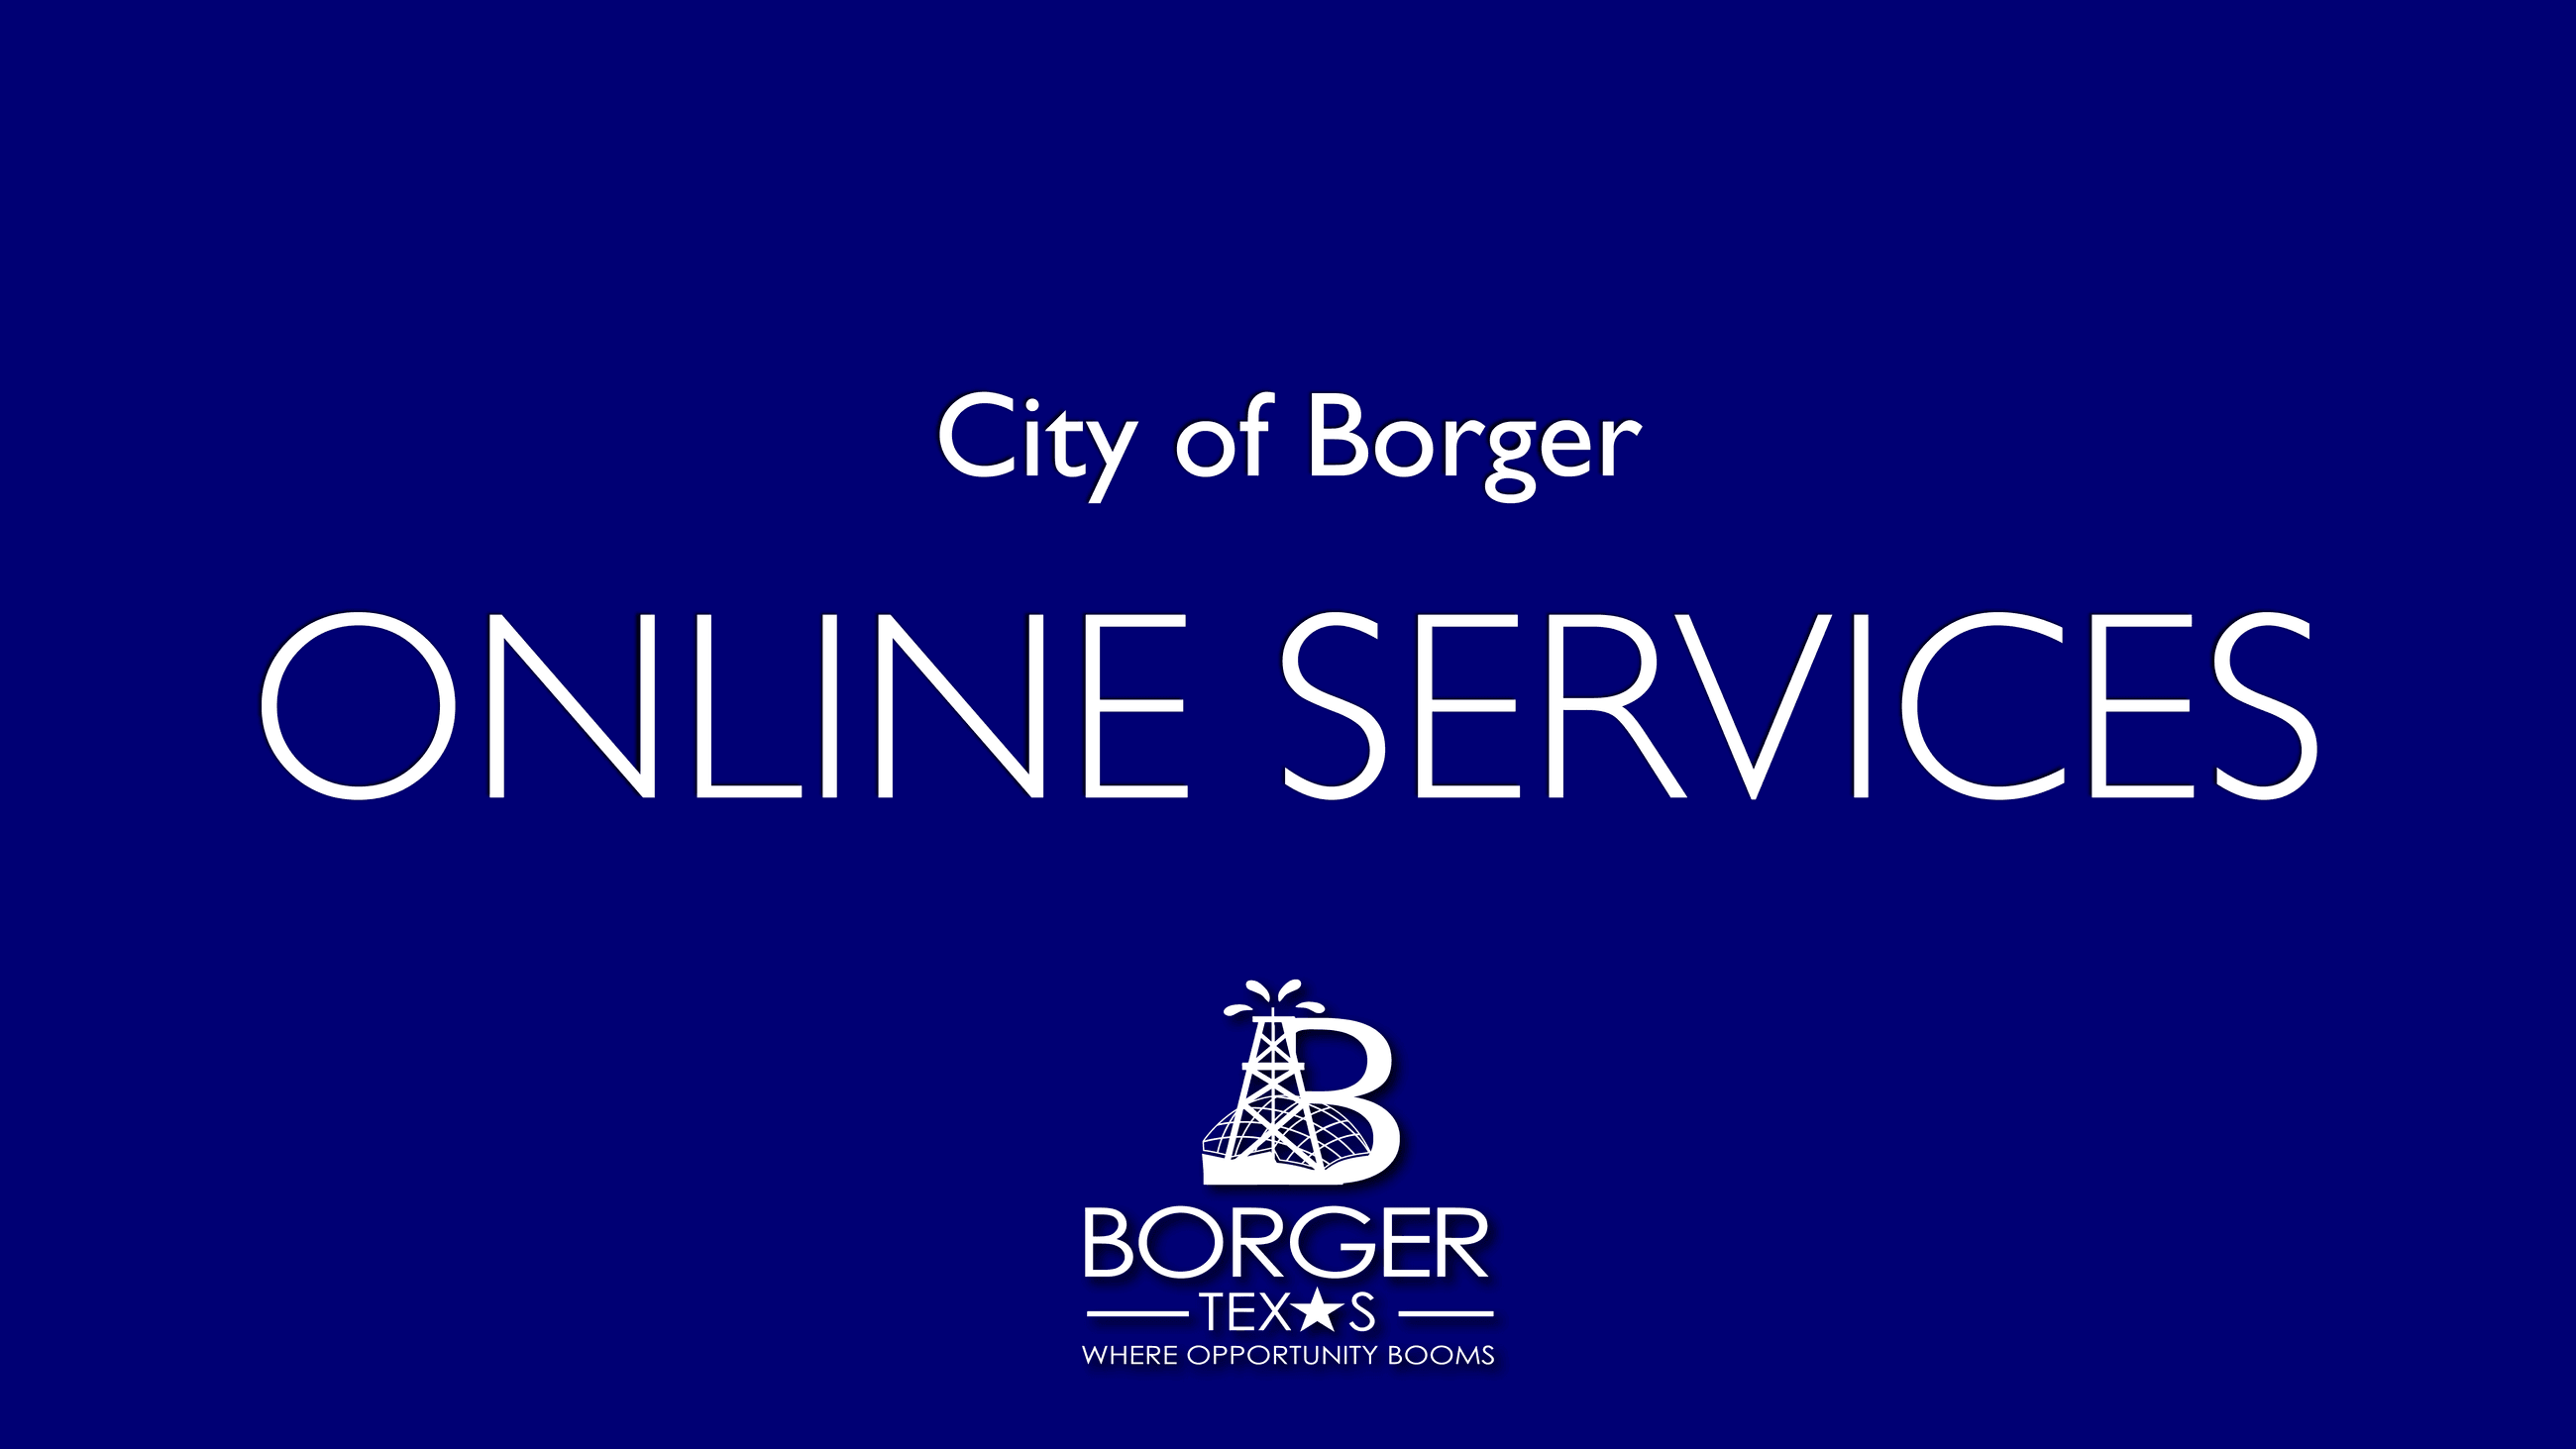 Click here access online services